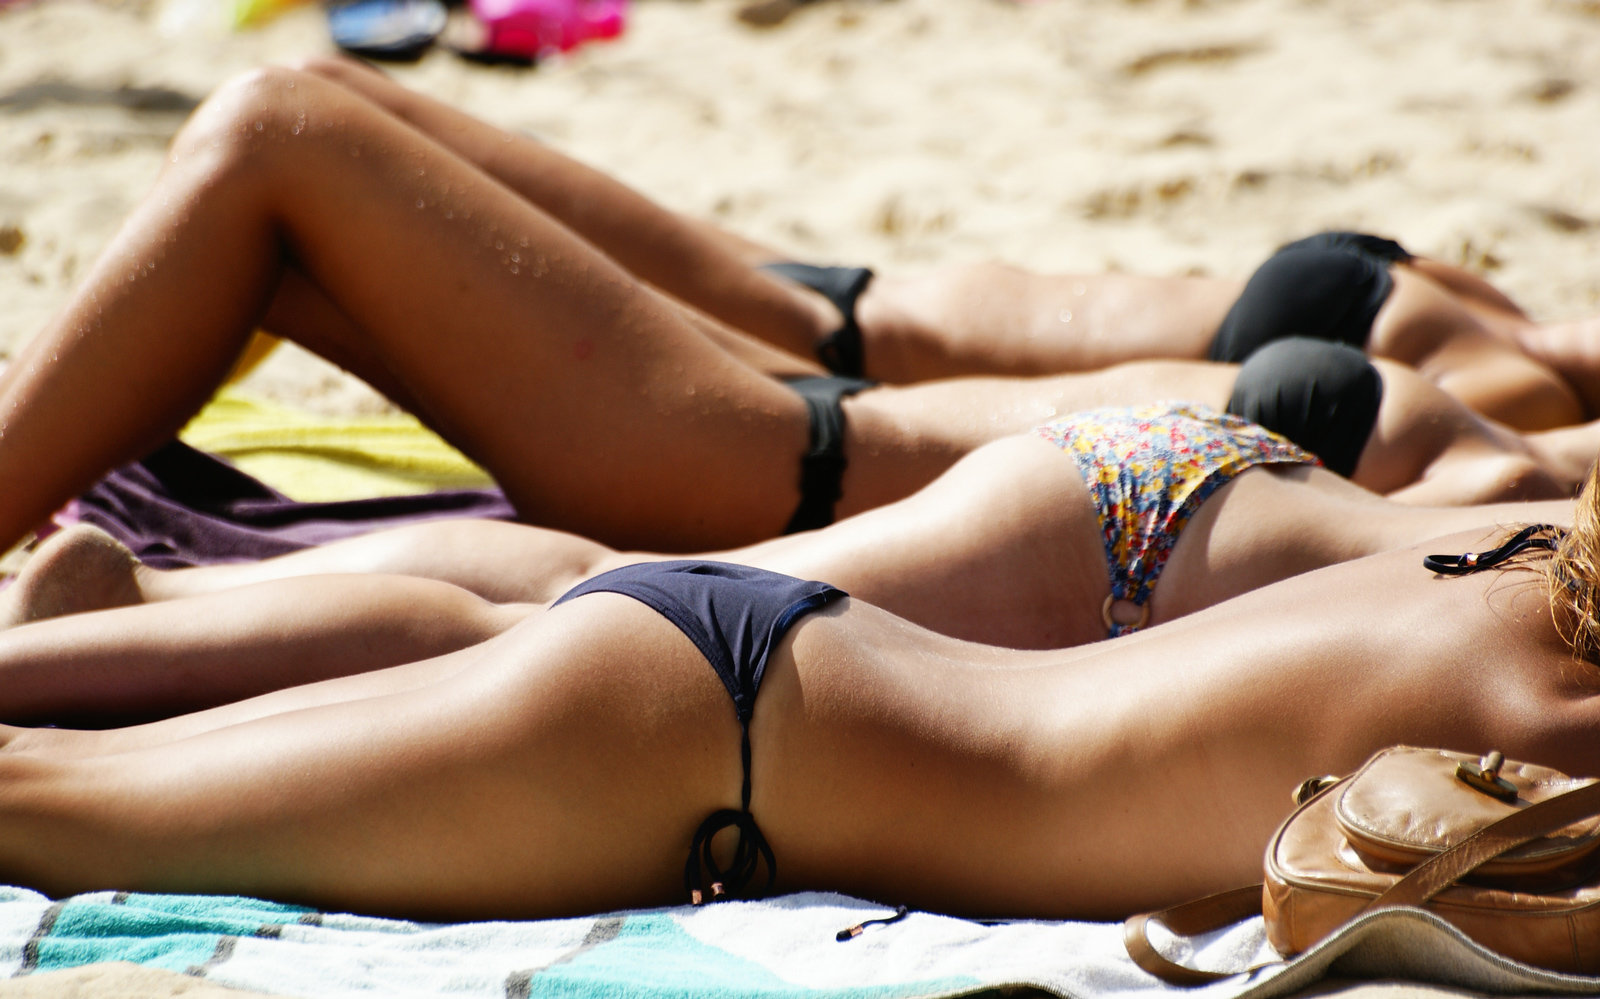 What You Should Know About Sunburn Before You Hit The